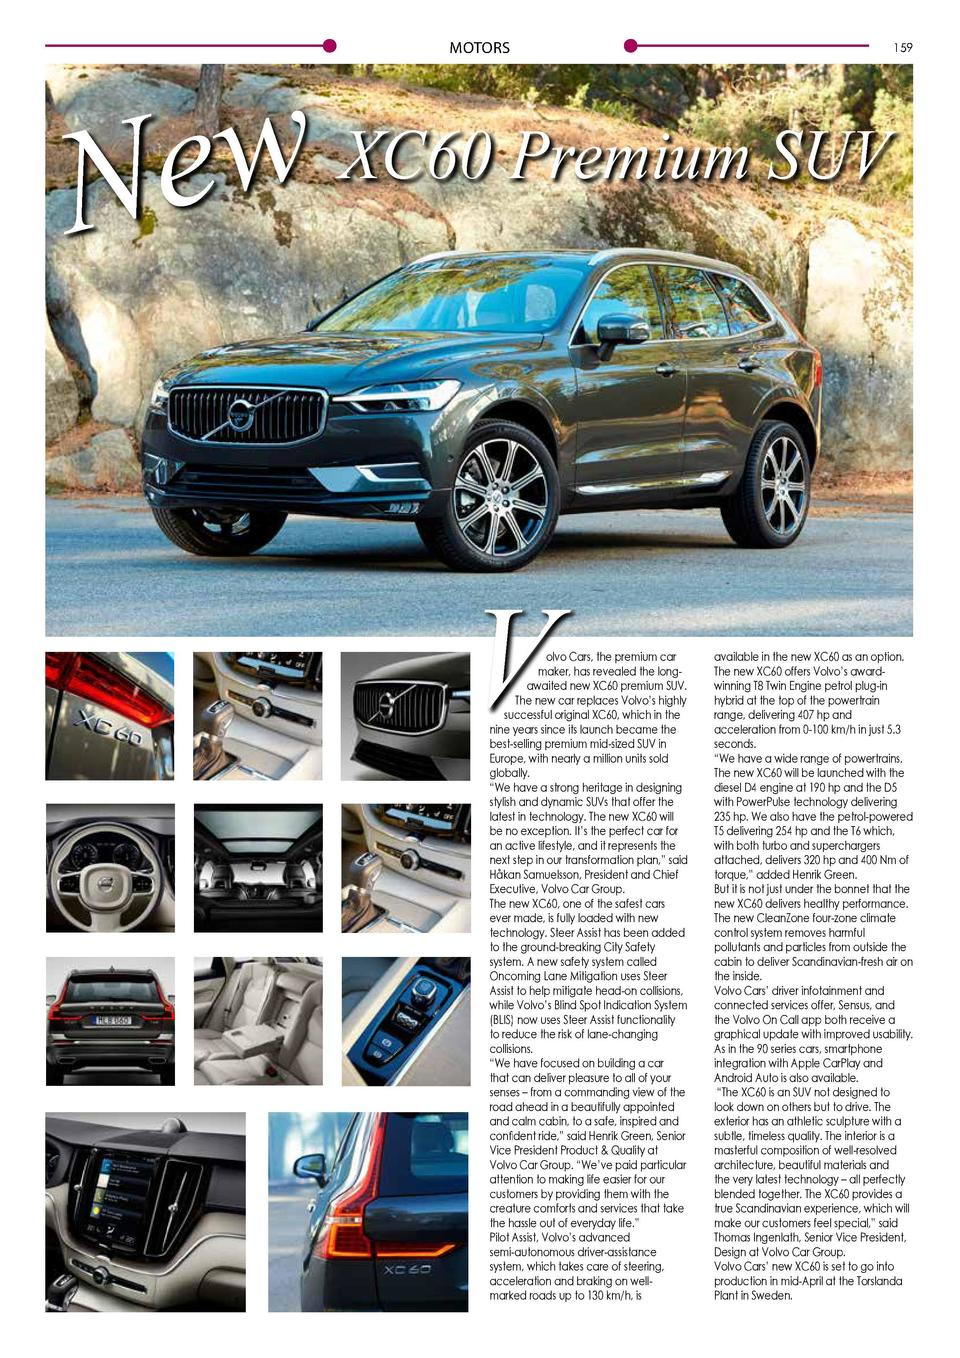 MOTORS  XC60 Premium SUV w e N  V  olvo Cars, the premium car maker, has revealed the longawaited new XC60 premium SUV. Th...